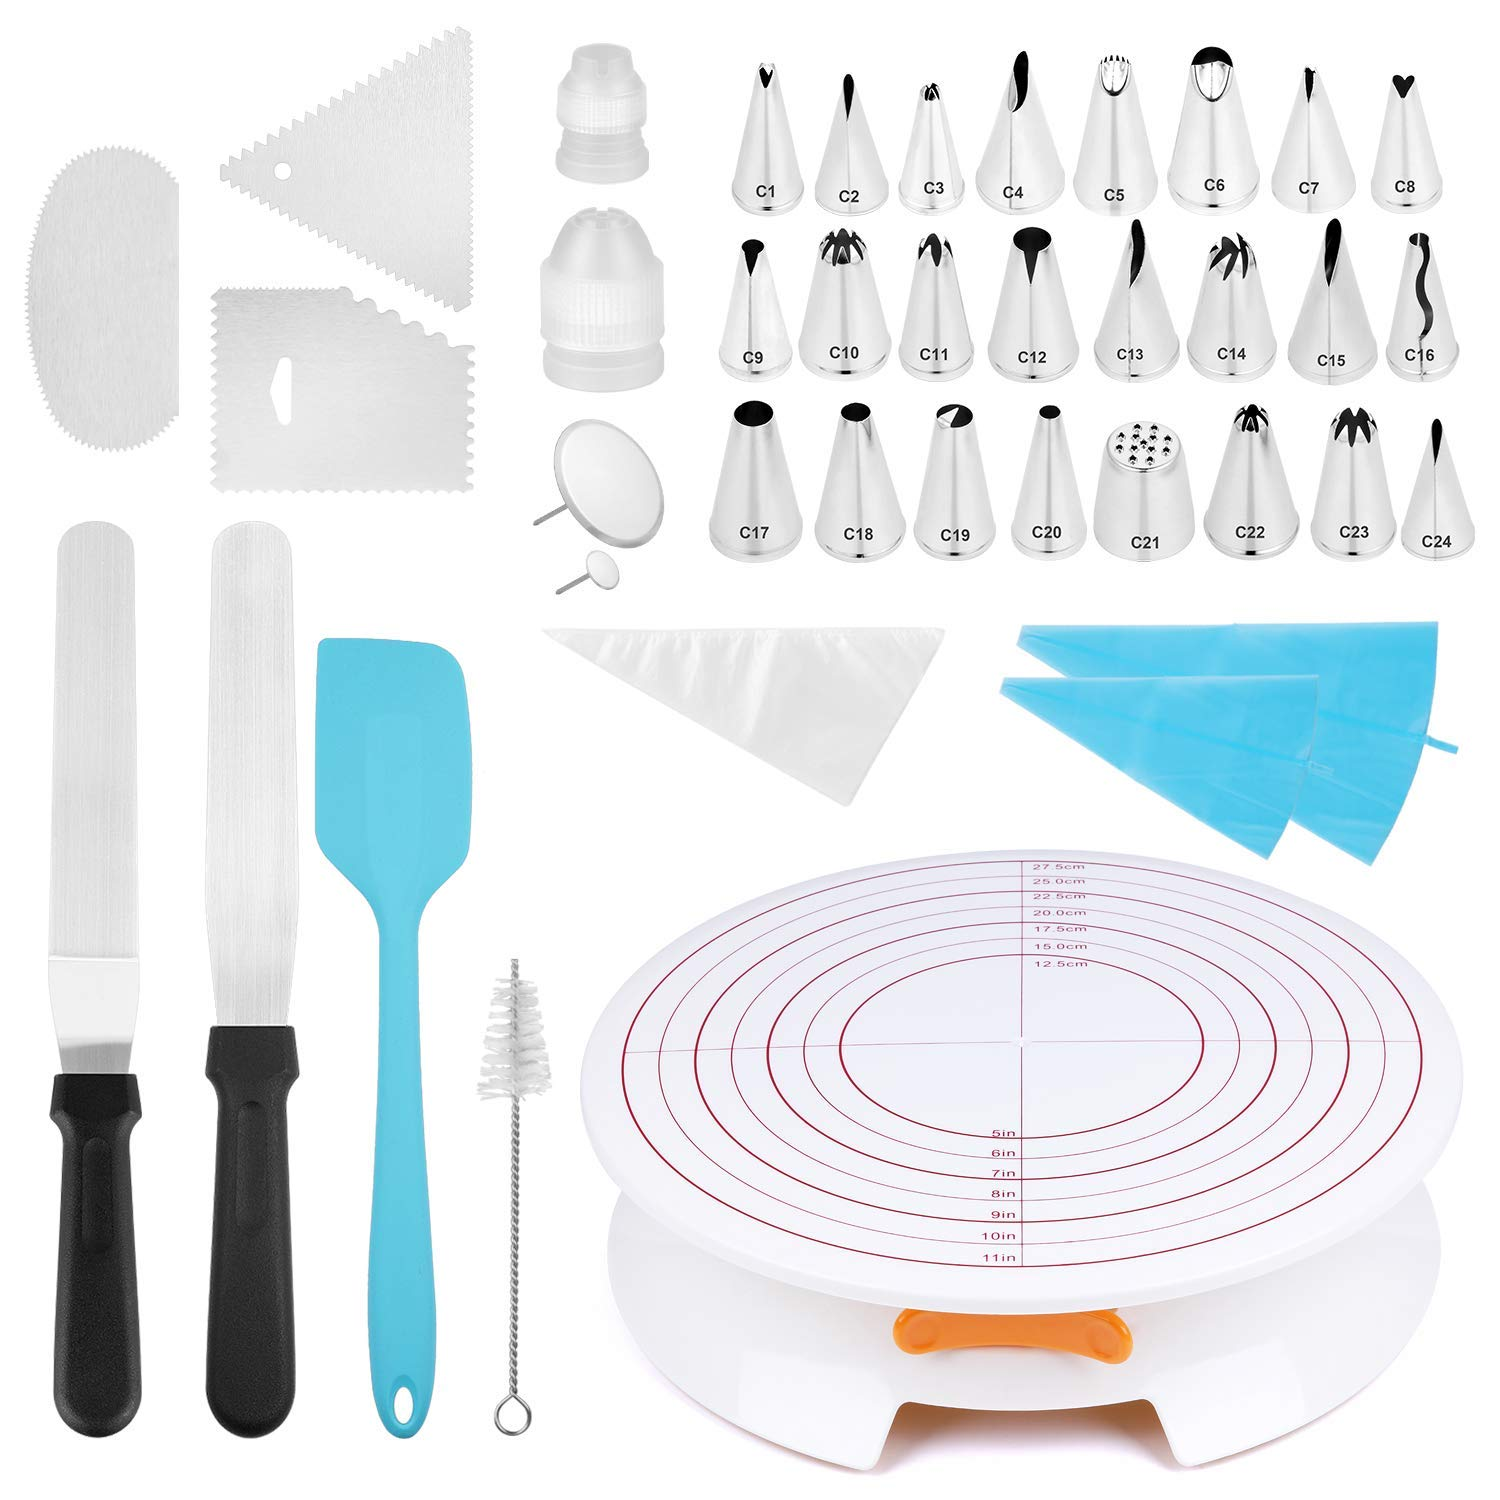 YUJUE Cake Turntable with Lock Cake Decorating Stand,All-In-One Cake Decorating Kit Supplies with 24 Cake Decorating Tips 2 Icing Spatula, 3 Icing Smoother and Cleaning Brush and One Silicone Spatula by YUJUE